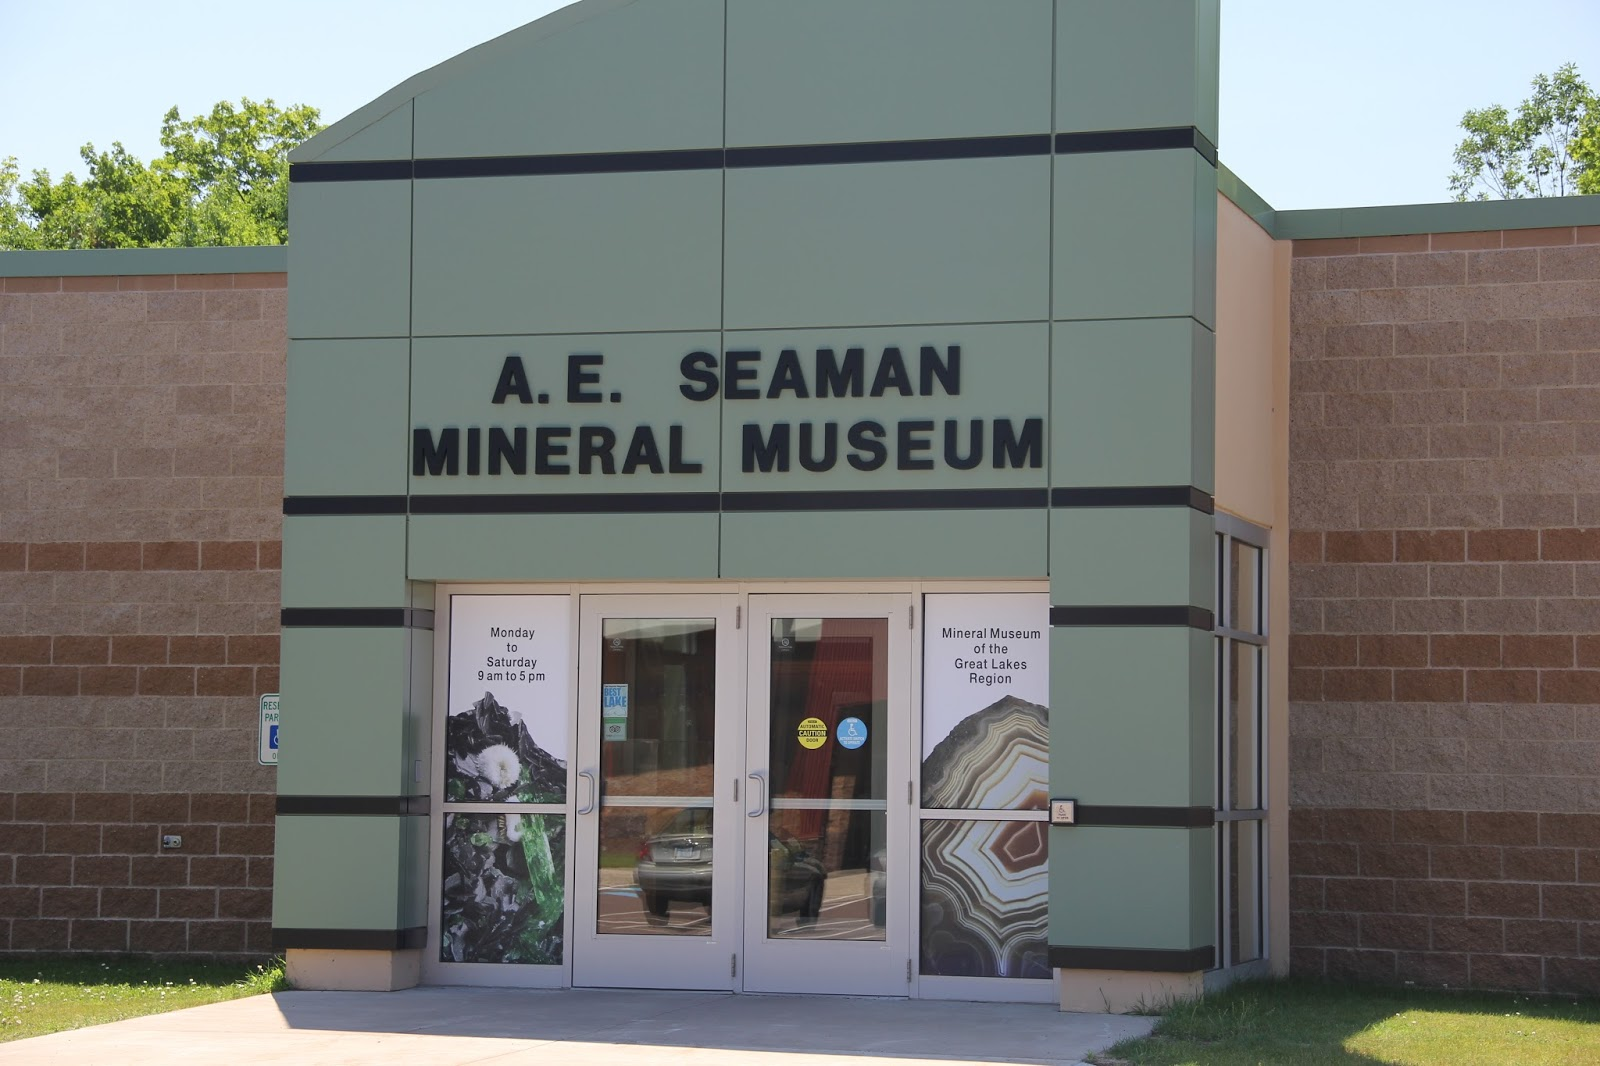 The A. E. Seaman Mineral Museum